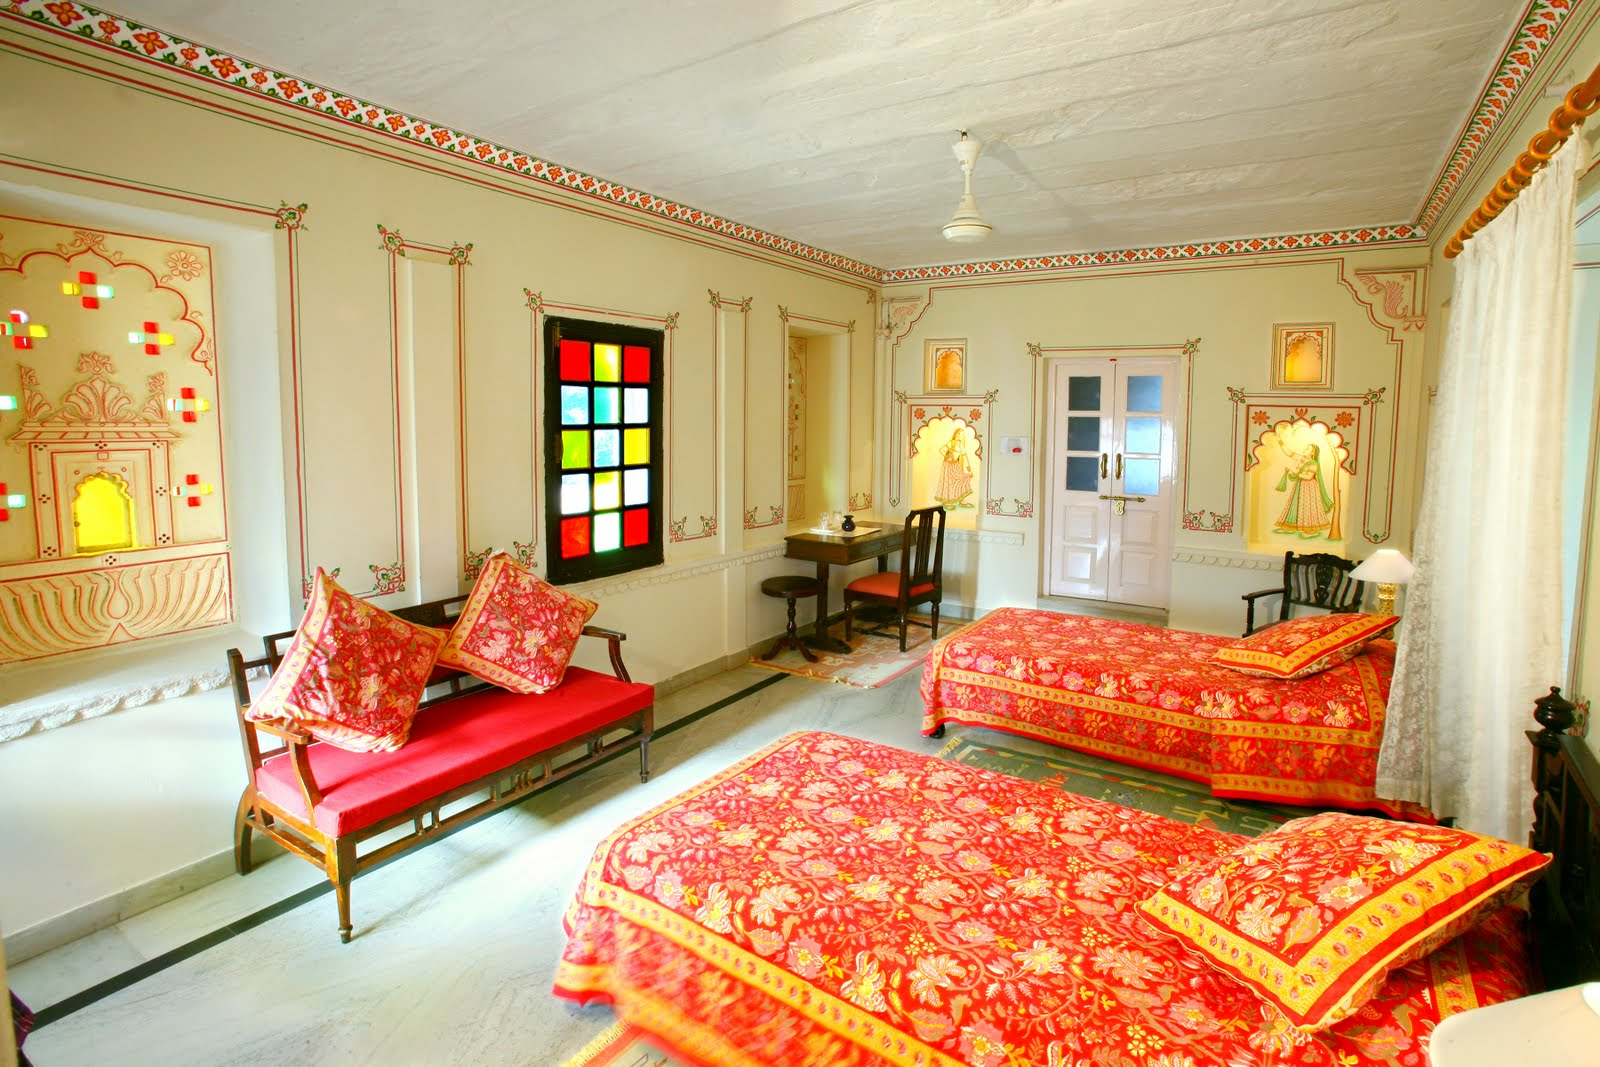 Rajasthani style interior design ideas palace interiors for Interior design looks